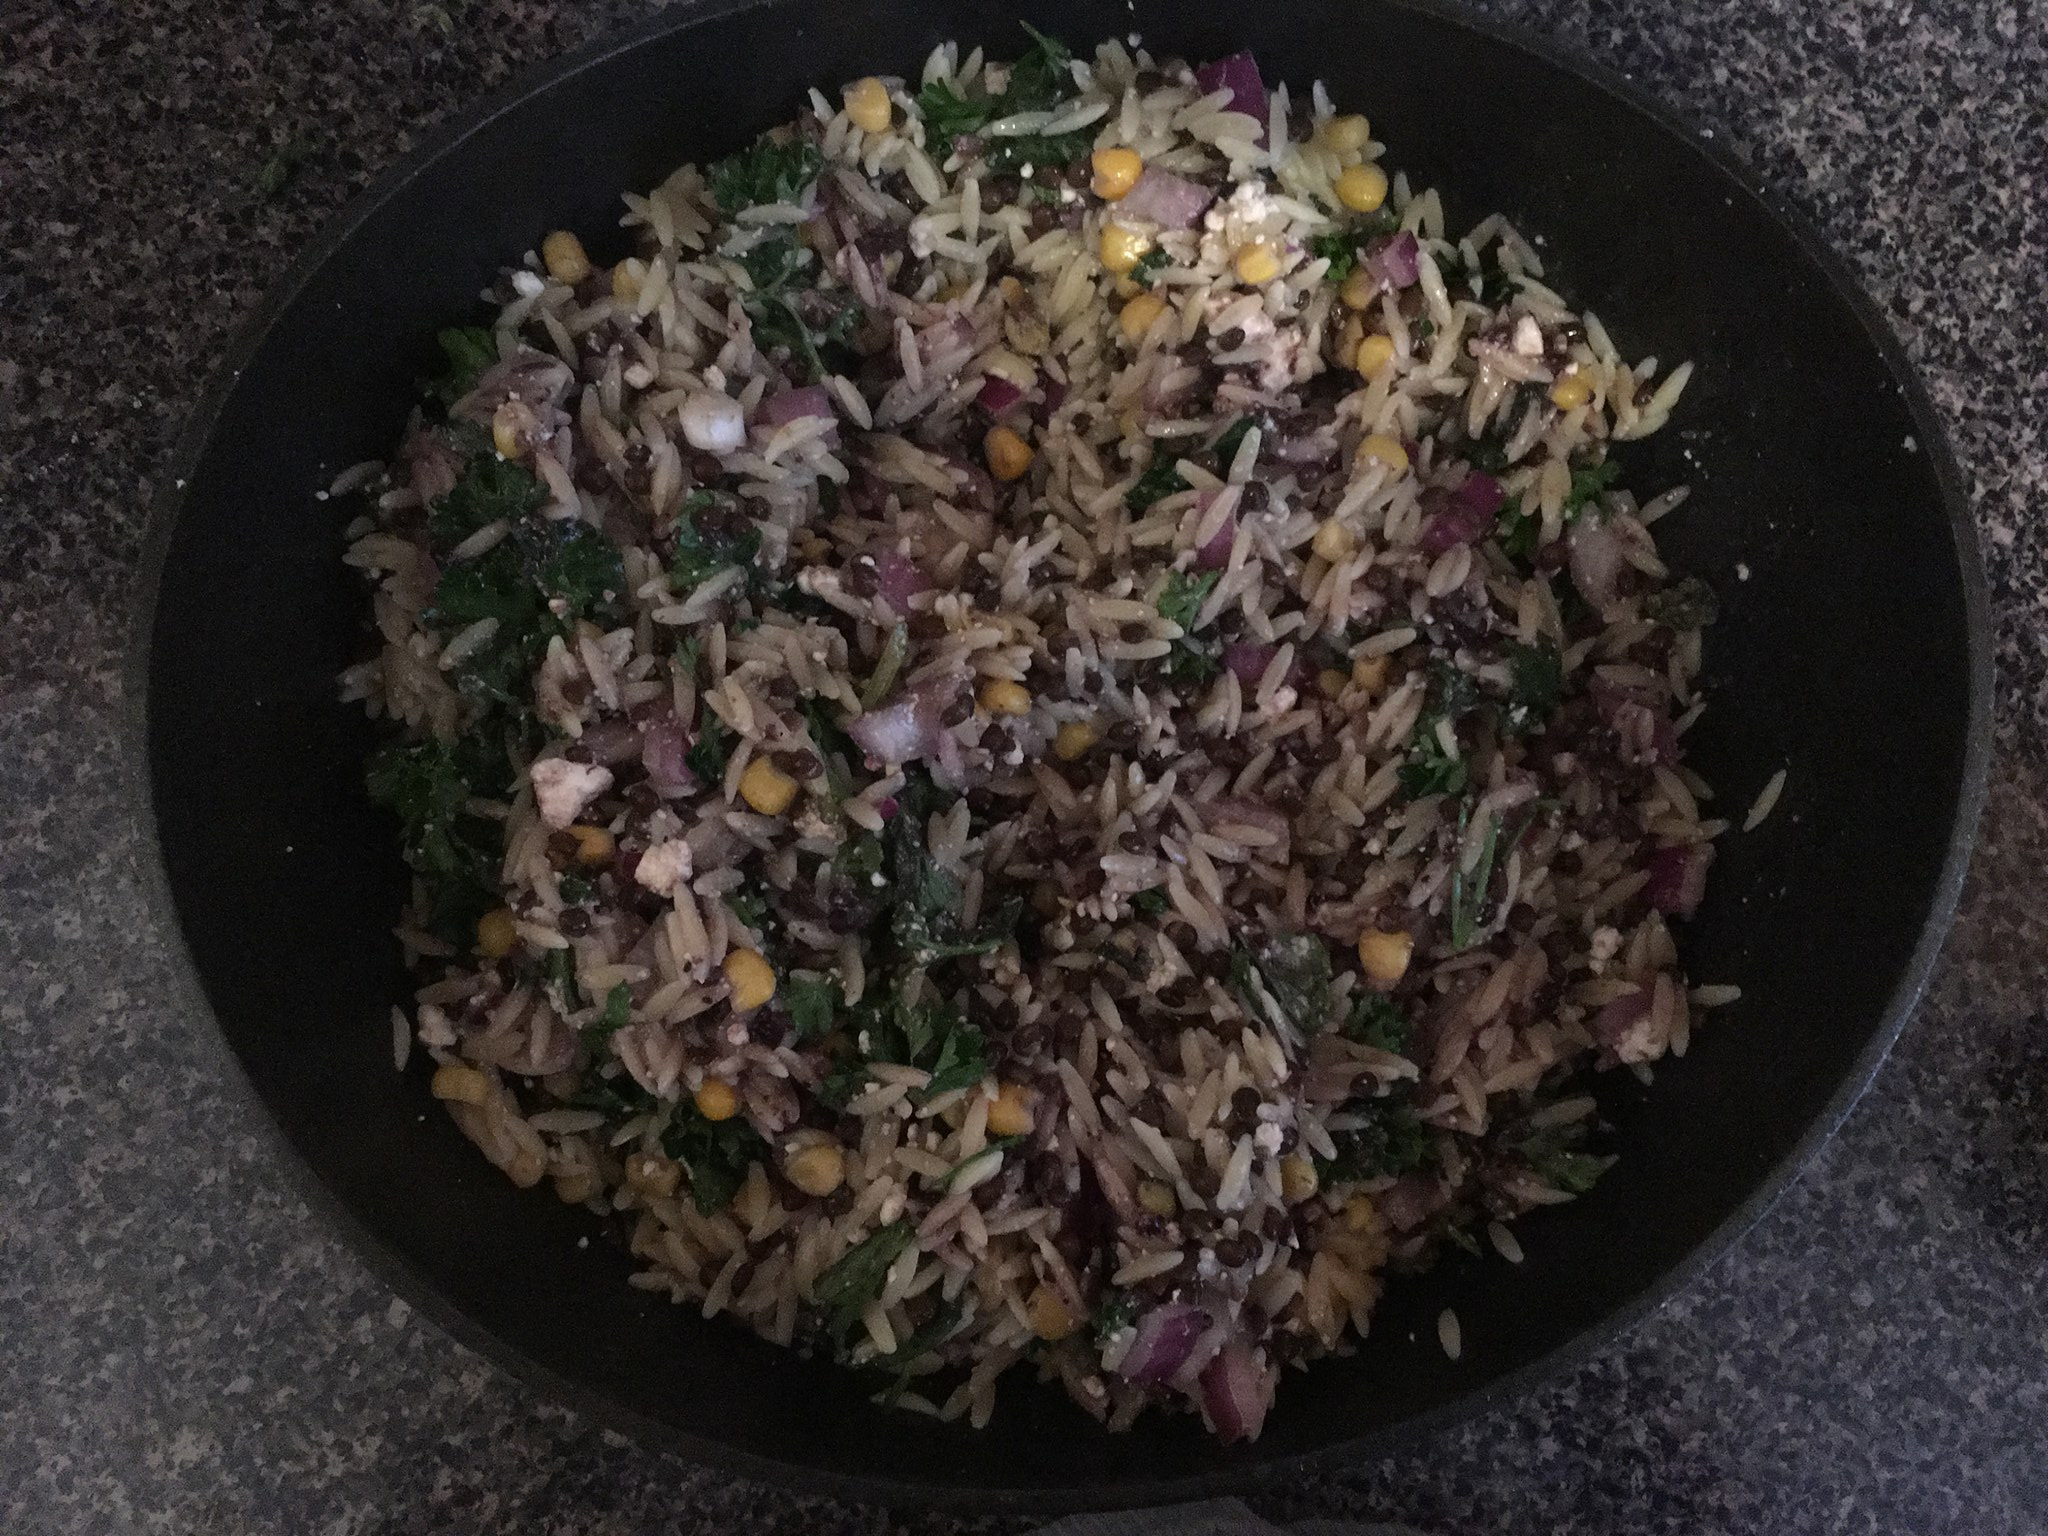 Lentil Orzo Salad in a bowl.